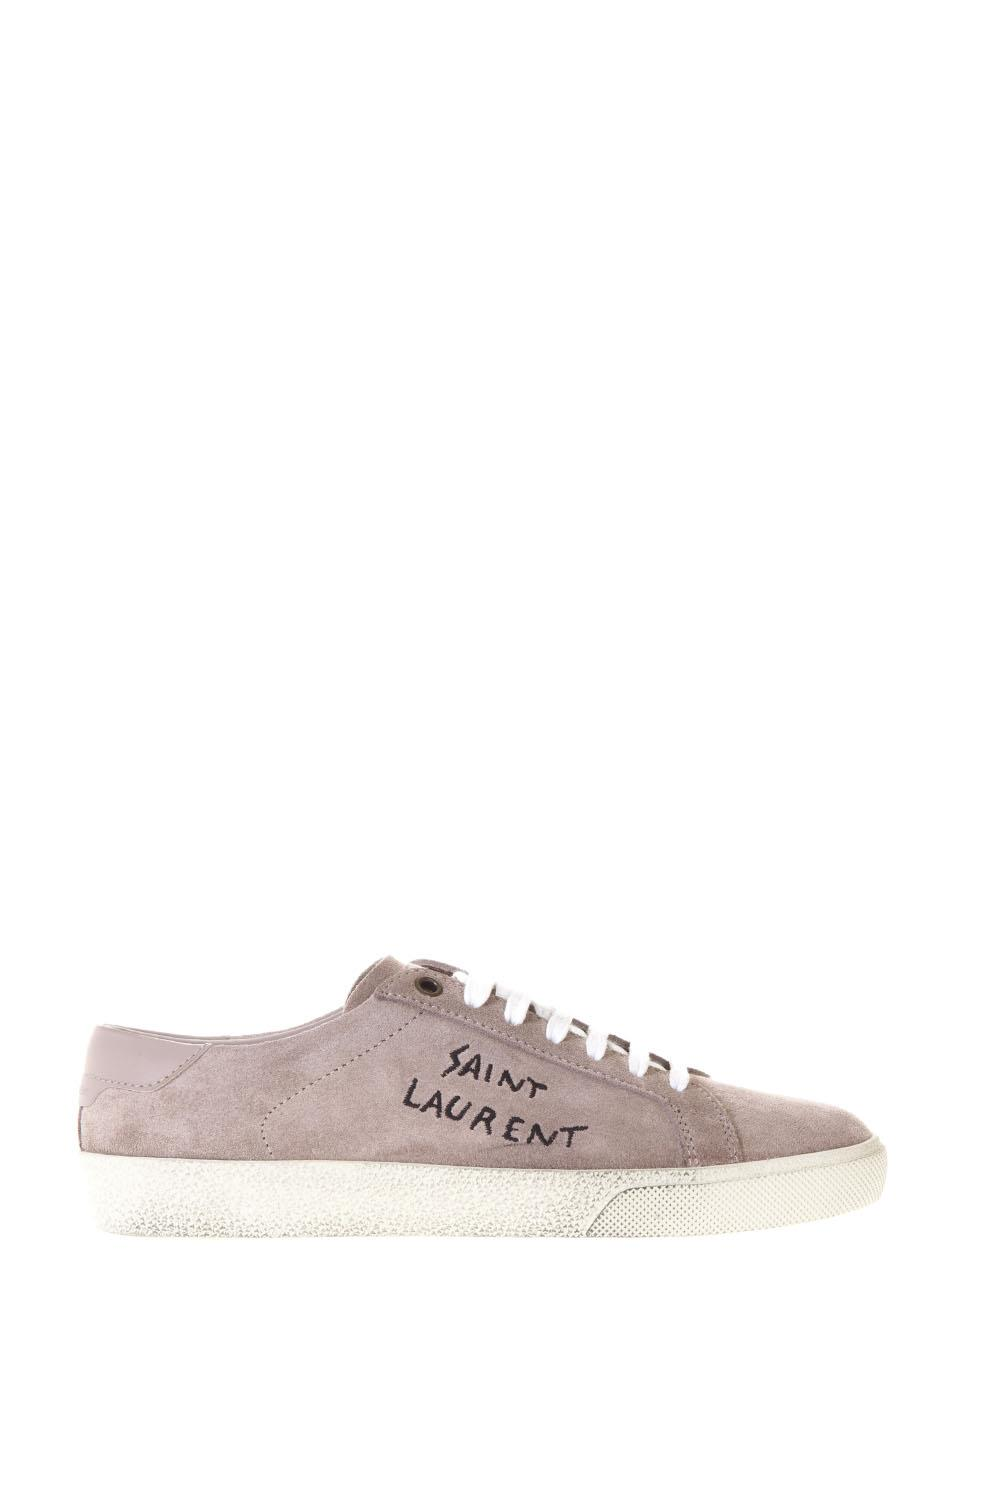 59e2211c87d5 COURT CLASSIC SL 06 ANCIENT ROSE SNEAKERS SS 2018 - SAINT LAURENT -  Boutique Galiano